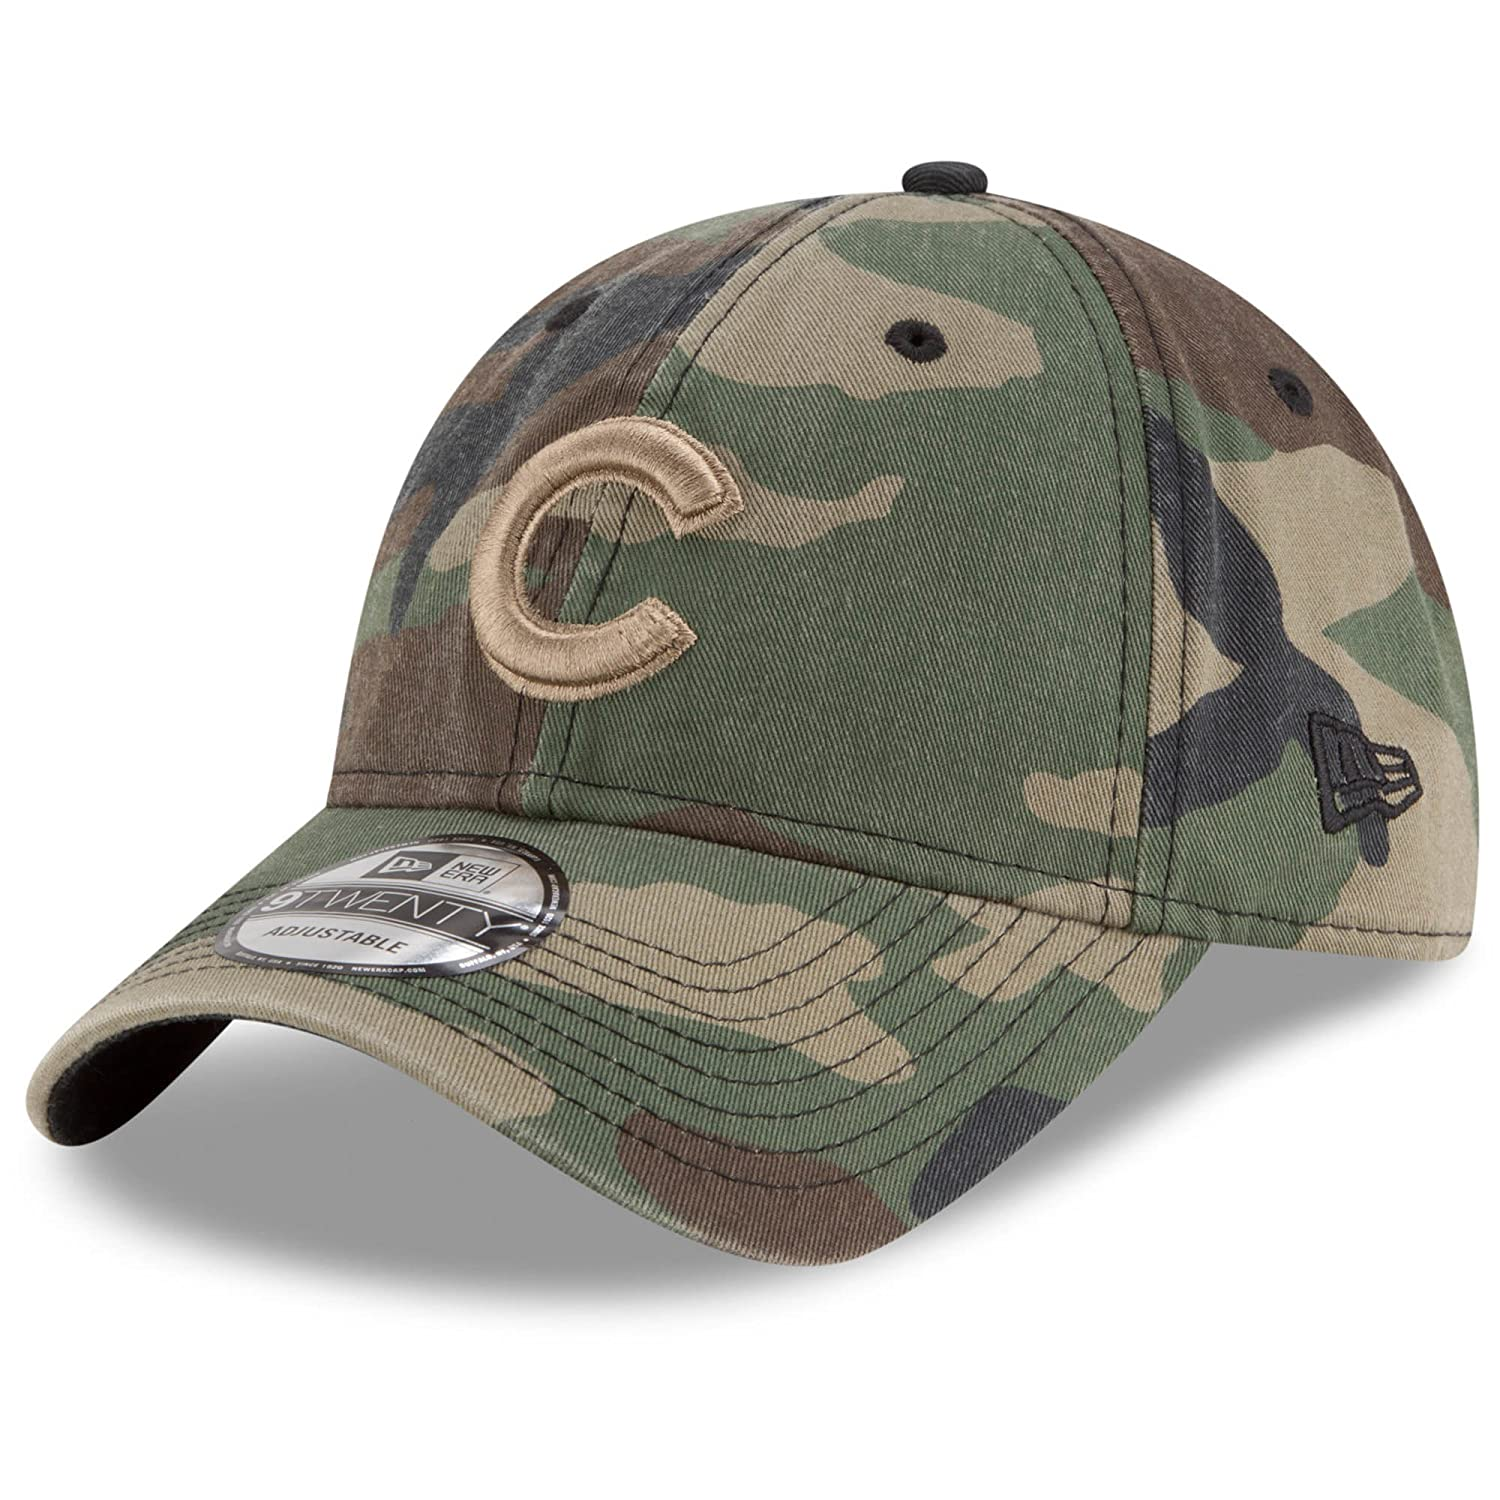 hot sale online 98db5 4a235 Amazon.com   Chicago Cubs New Era Tonal Core Classic 9TWENTY Adjustable Hat  Camo   Sports   Outdoors